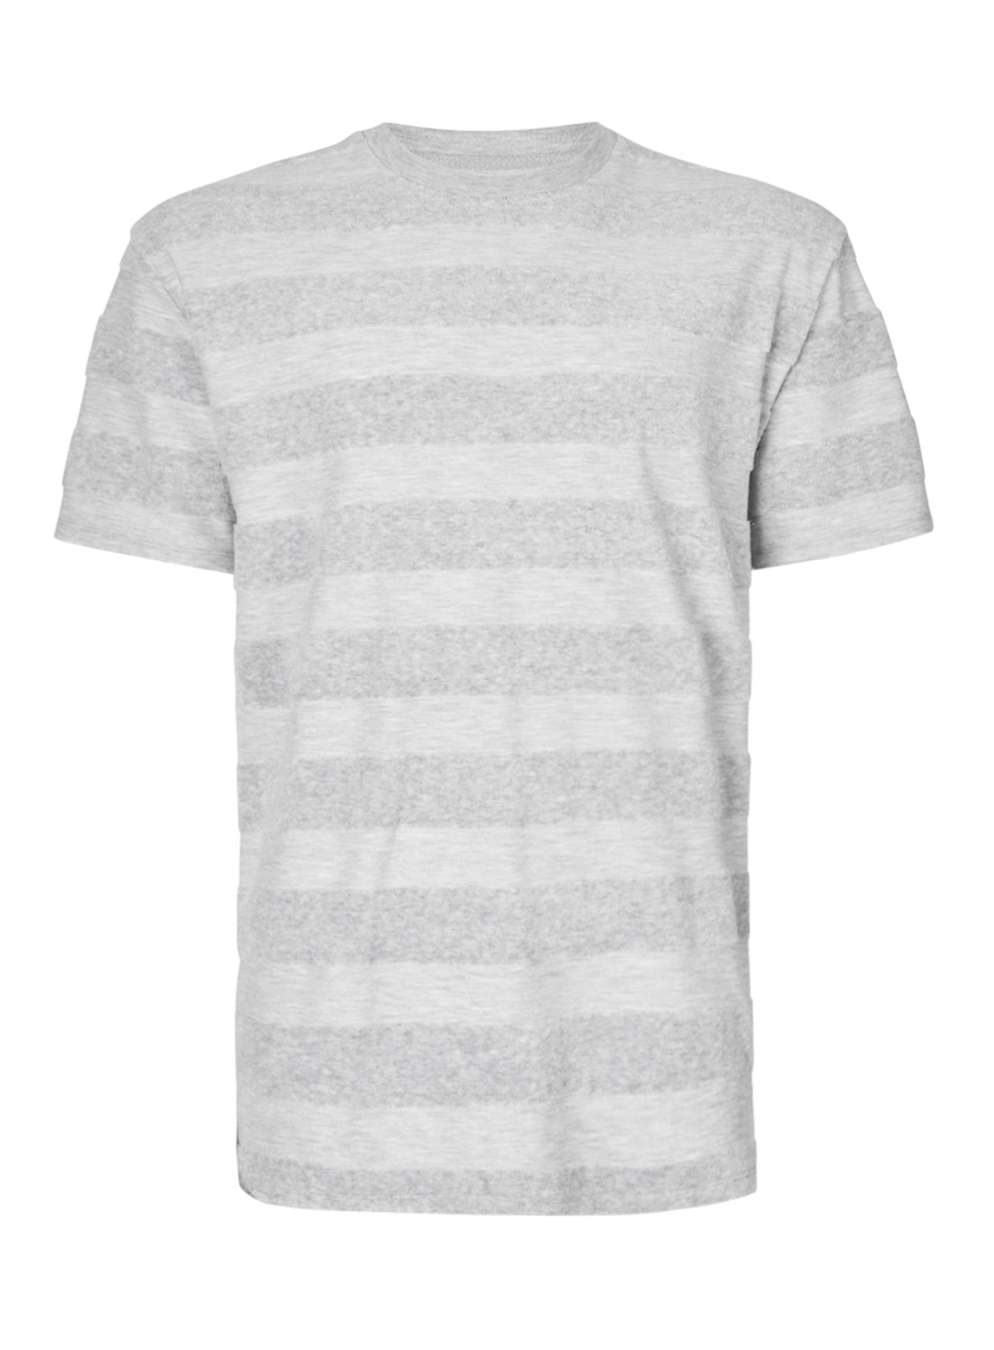 TOPMAN LTD Grey Stripe Towelling T-Shirt, £25